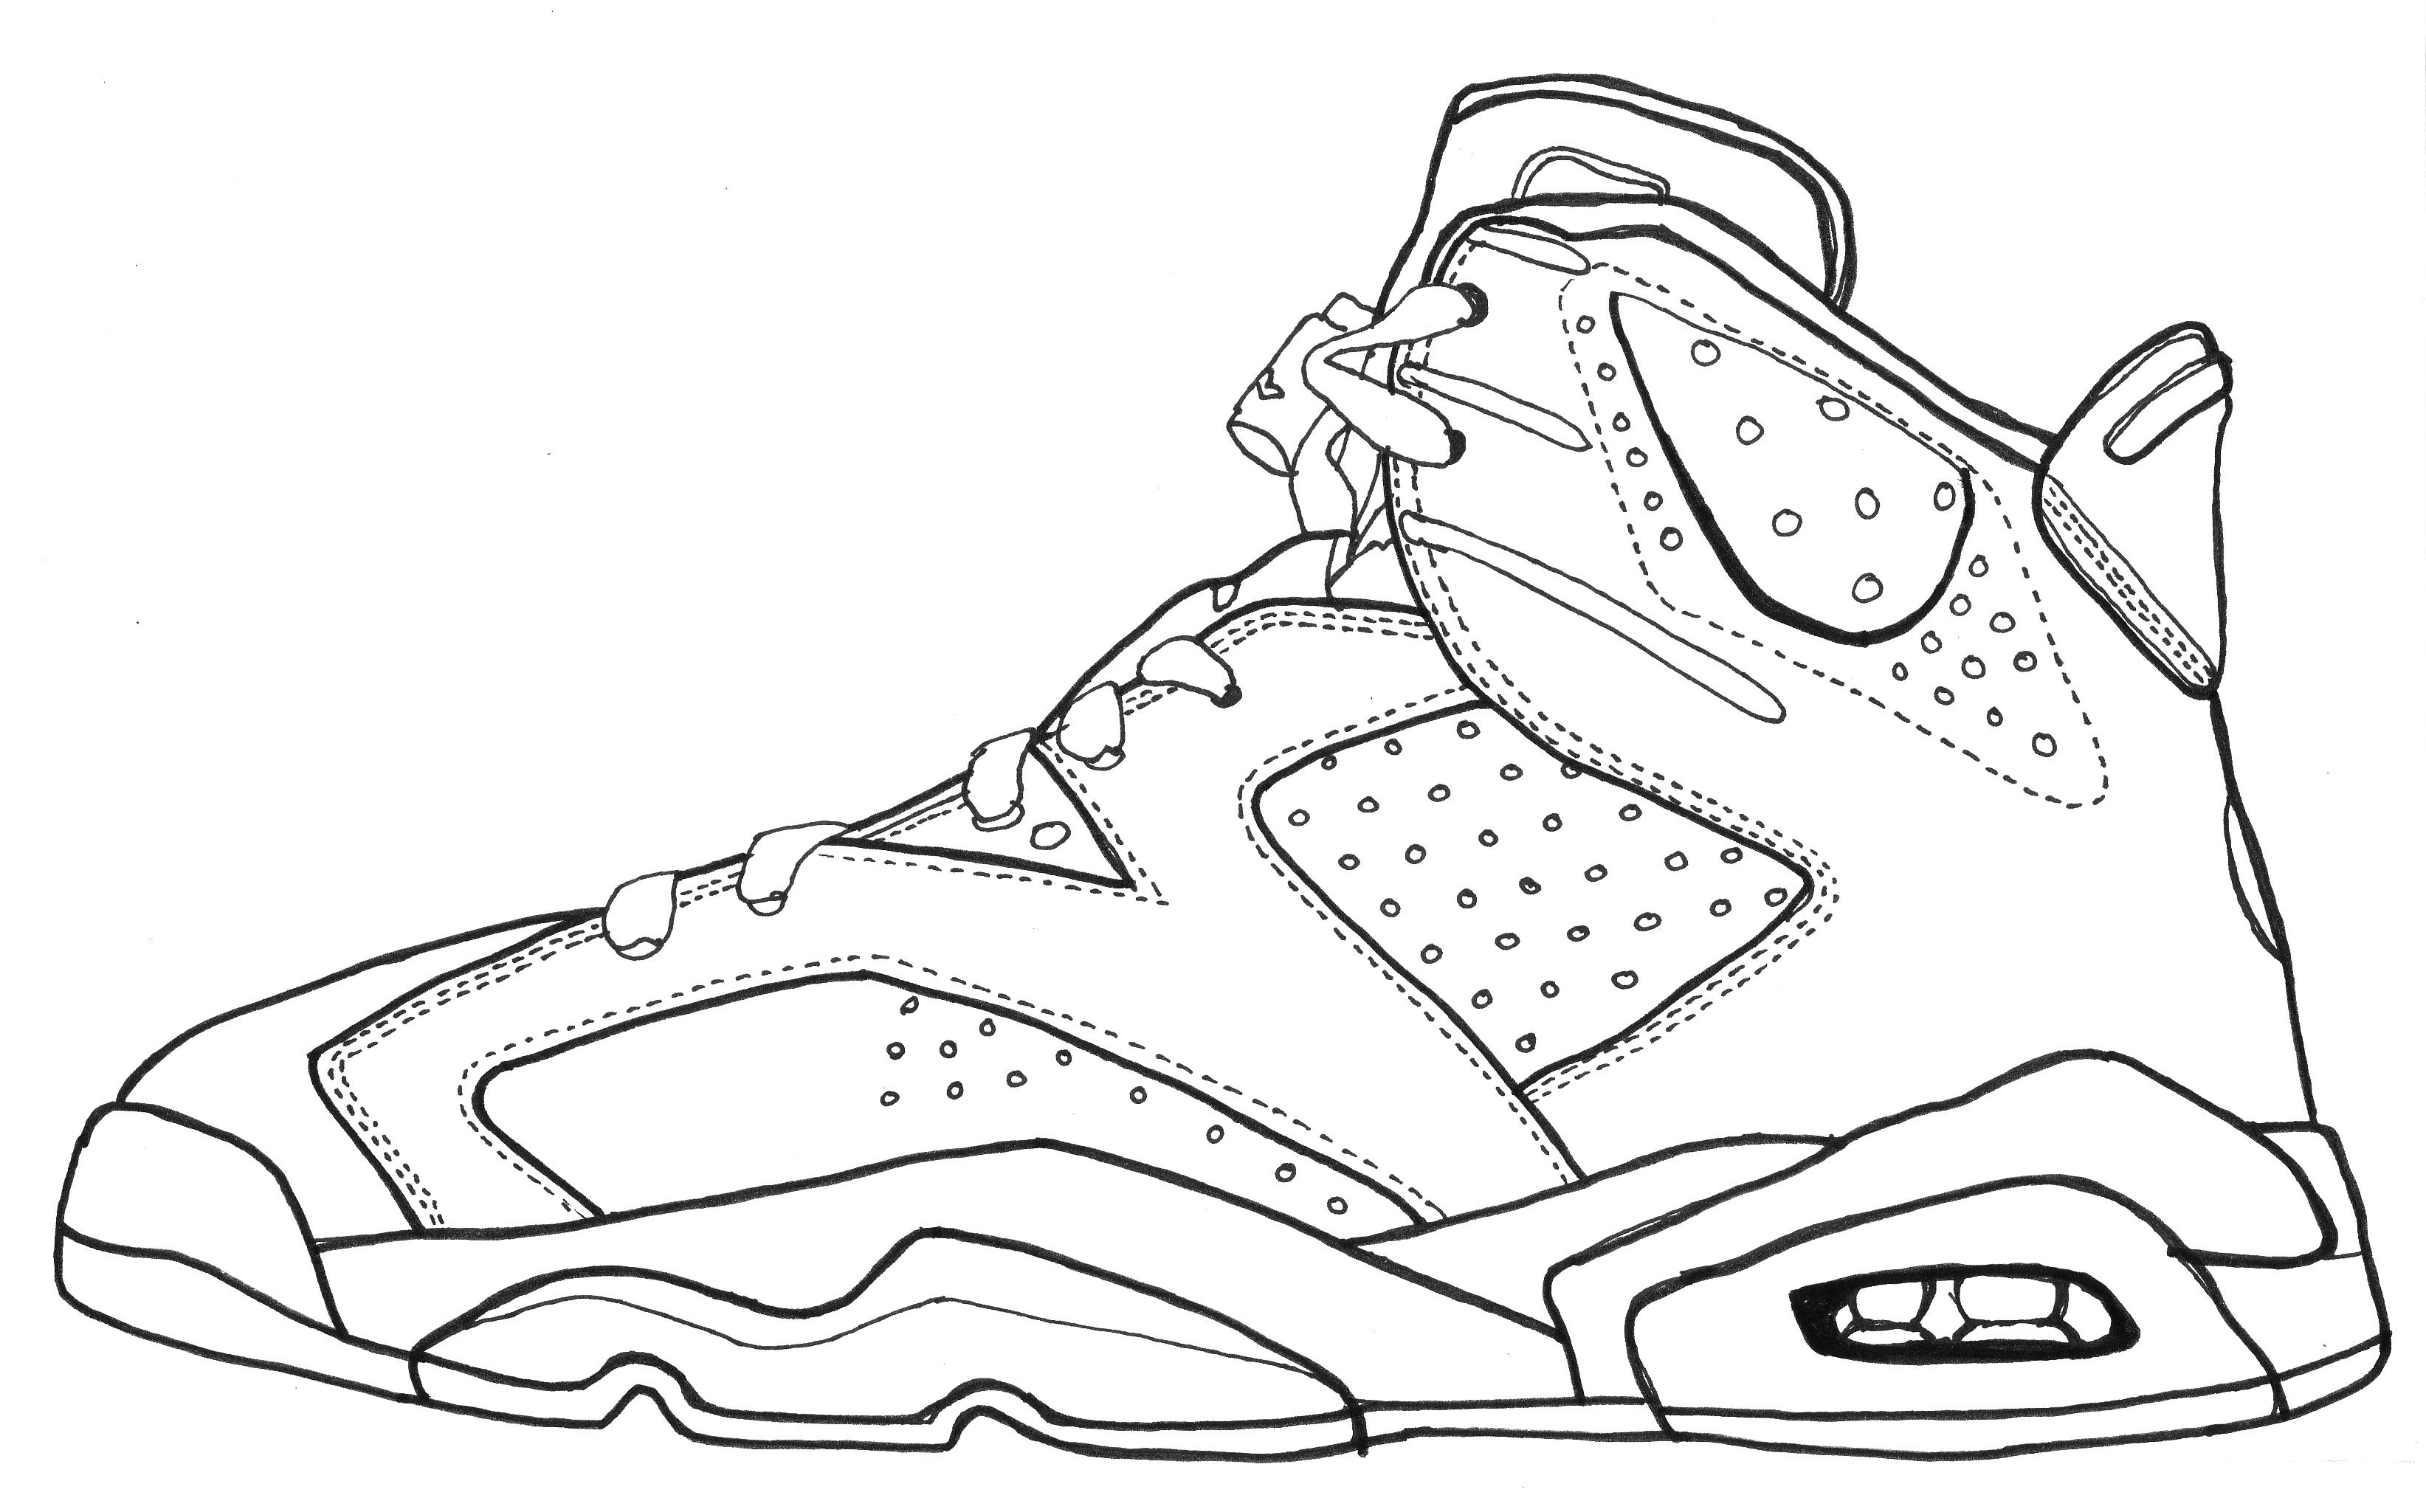 Jordan VI sketch black and white line drawing